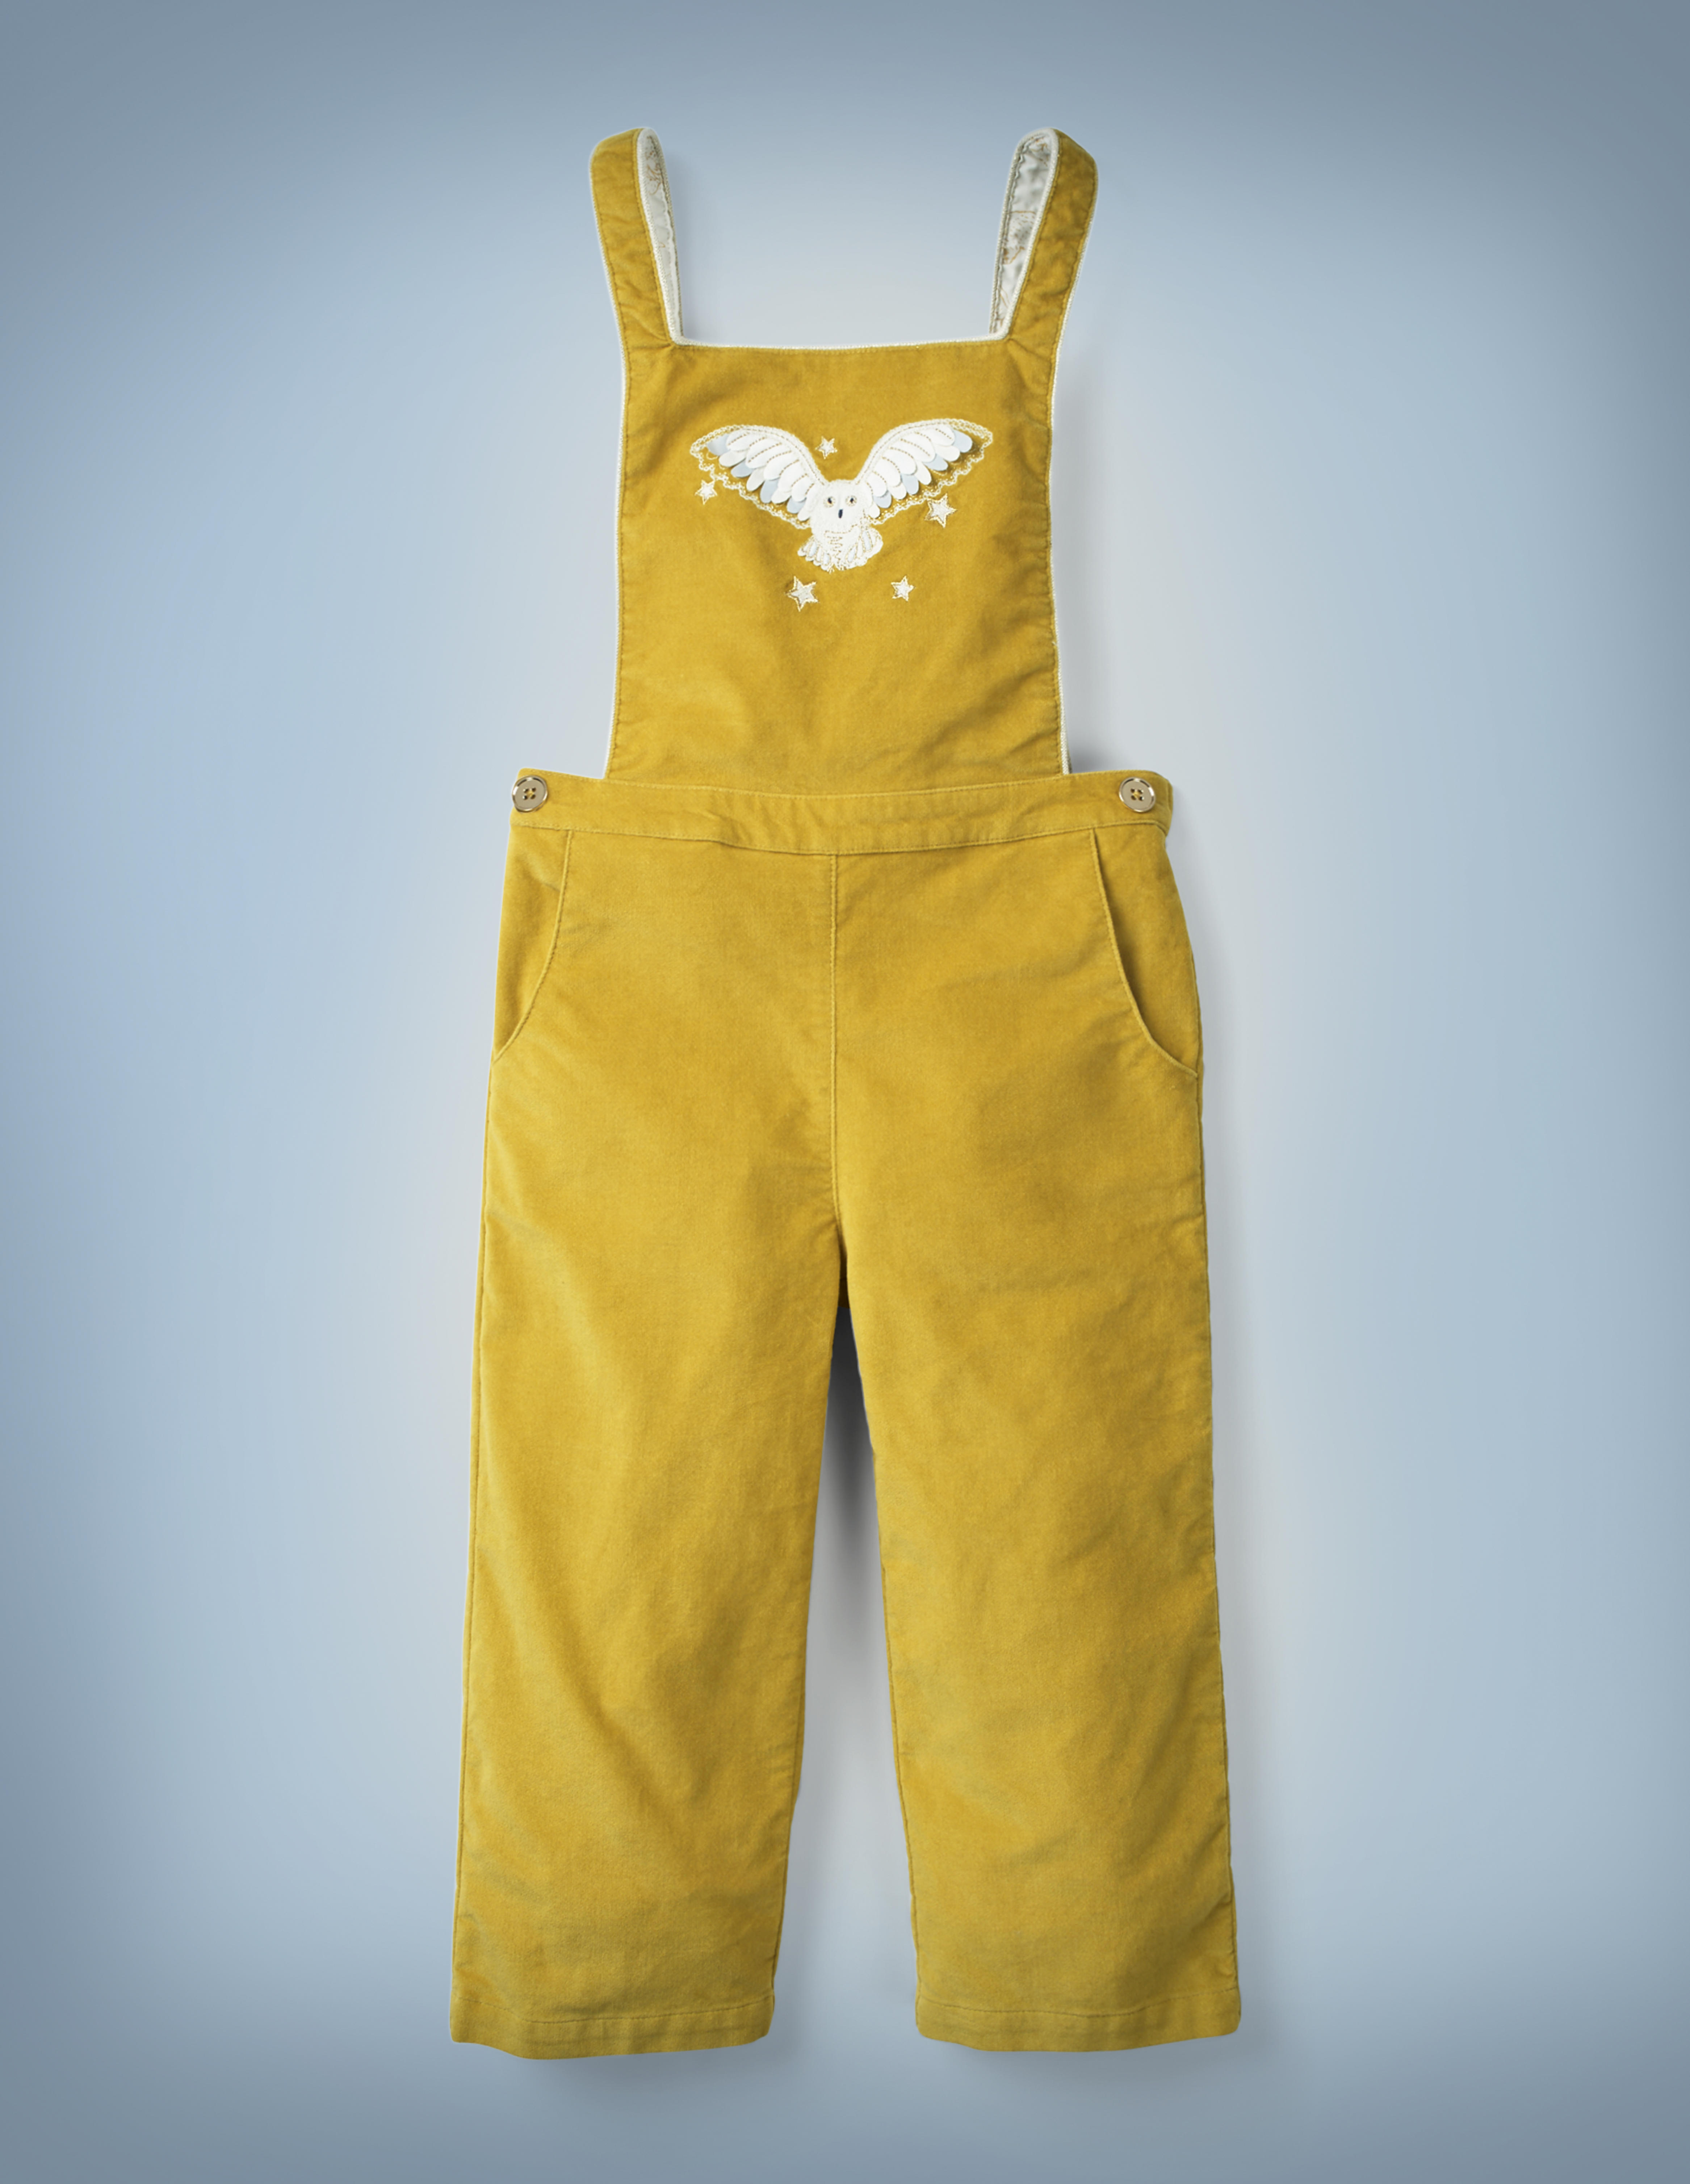 The Mini Boden Hedwig Dungarees in mustard yellow feature a design of Harry Potter's beloved owl flying through the stars on the breast of the overalls. They retail at £40.